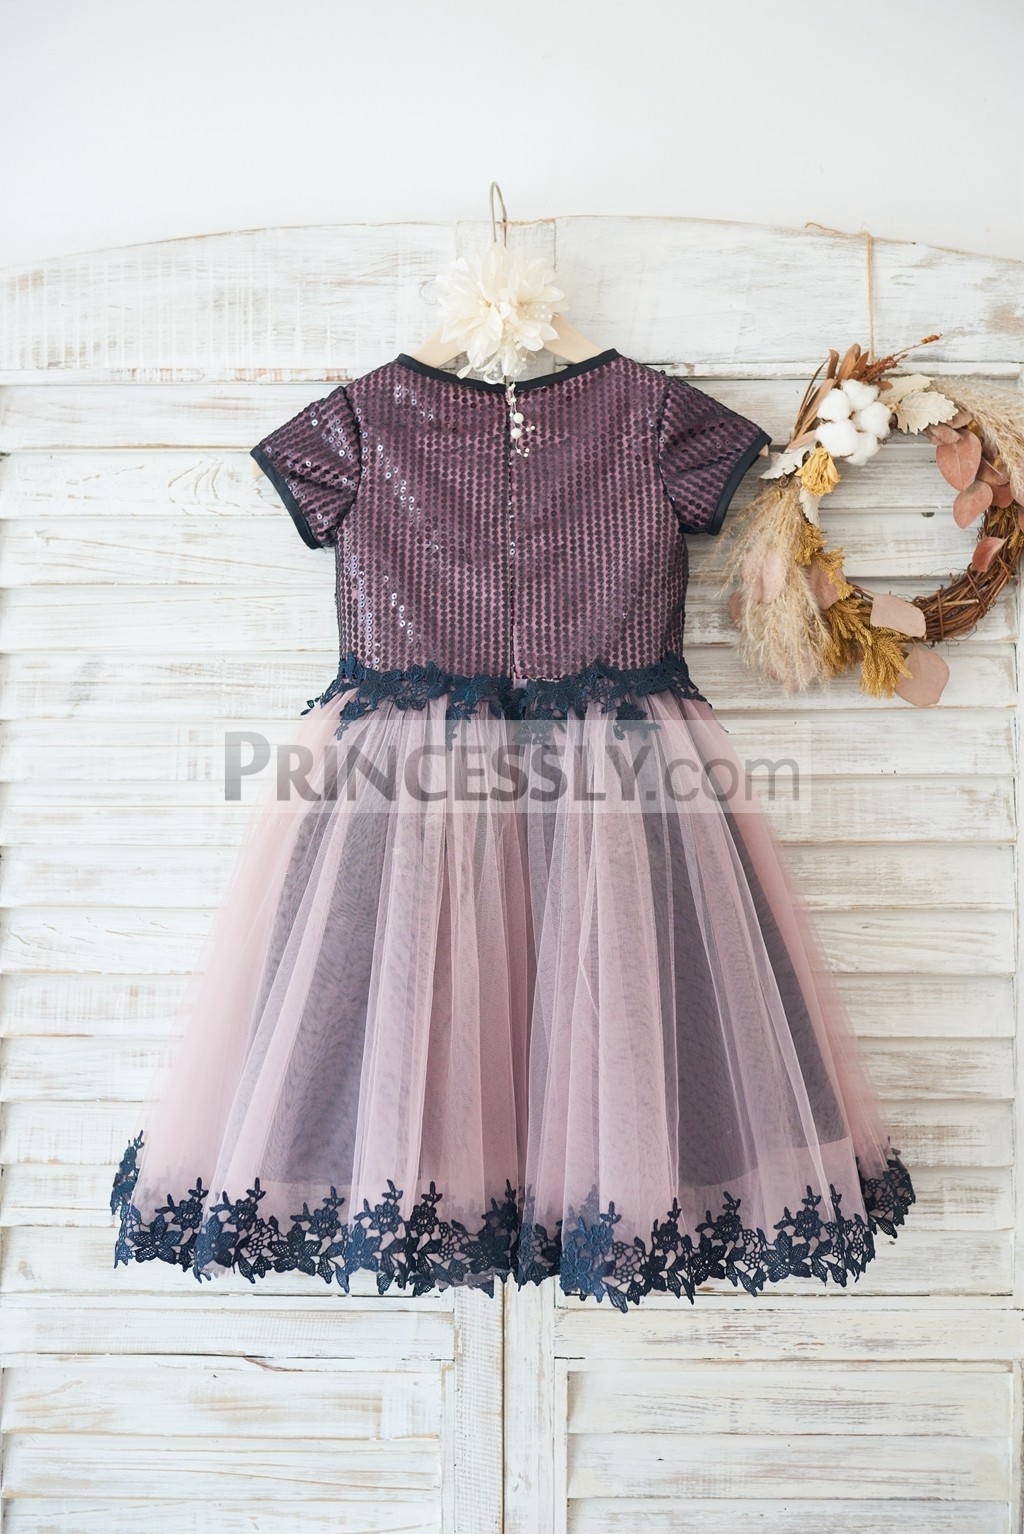 Mauve tulle skirt with black lace trim wedding little girl dress